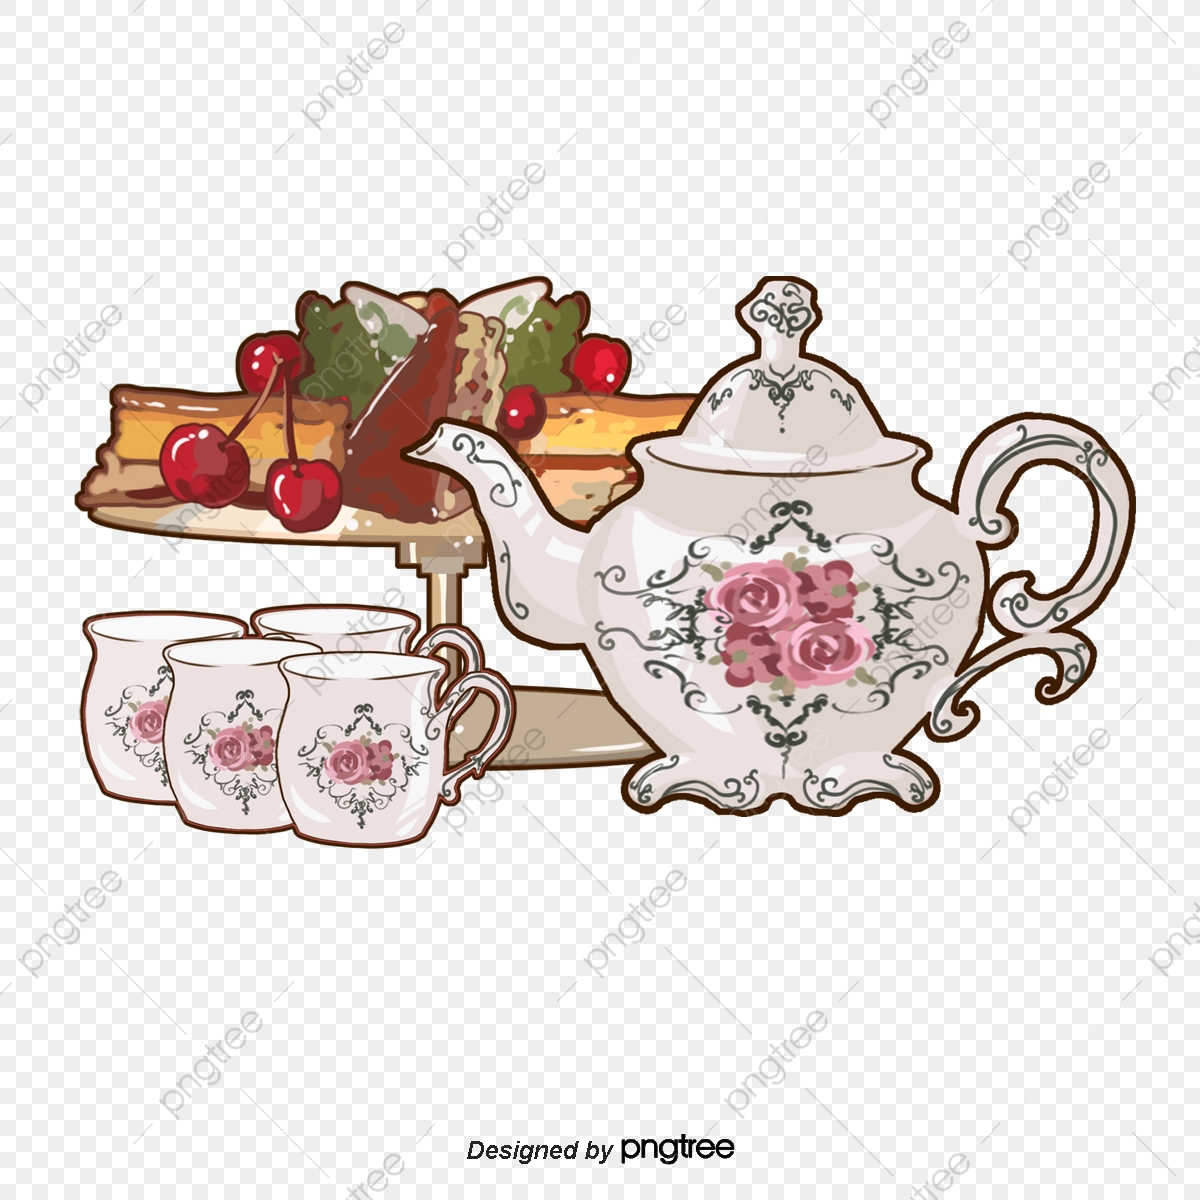 English Afternoon Tea Set Snacks, Afternoon Tea, Cherry, Rose PNG.